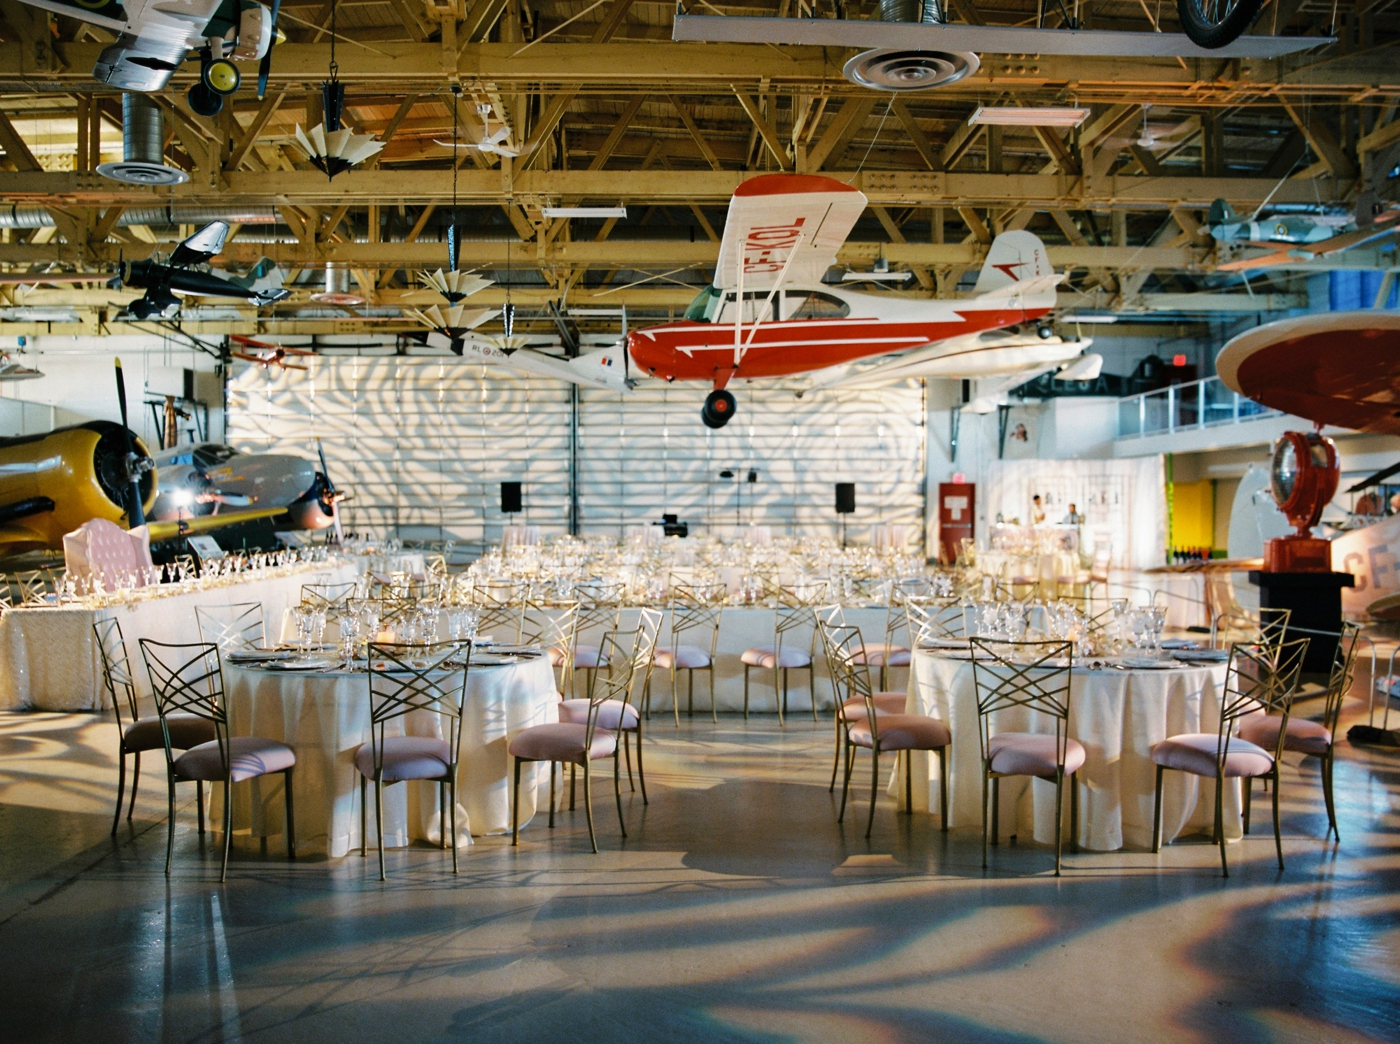 calgary wedding photographers | Ukrainian wedding | justine milton fine art photographer | wedding reception decor airplane museum julianne young weddings